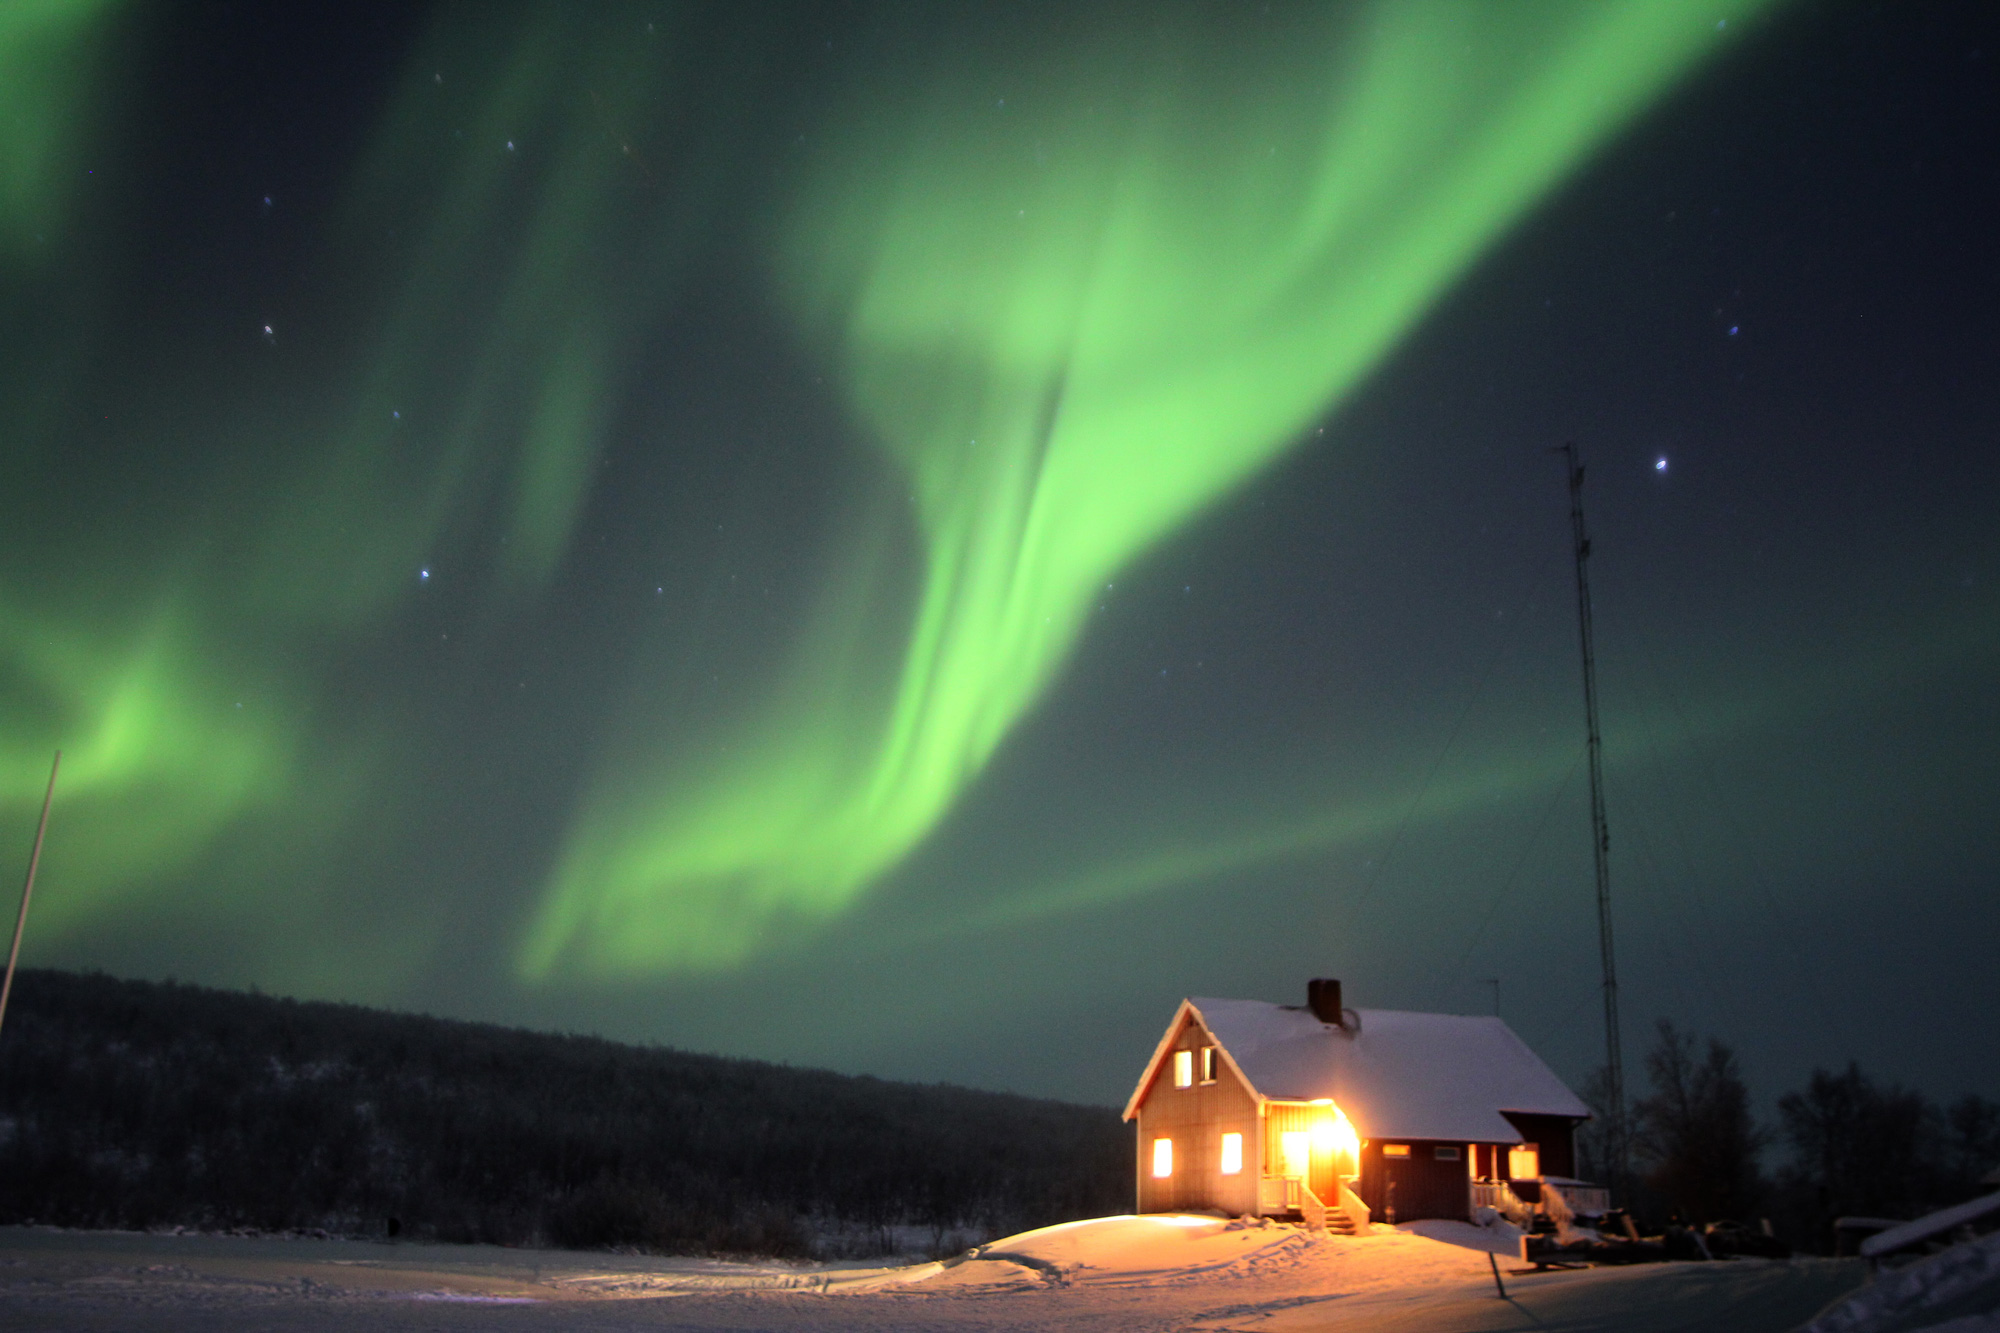 If you get chilly you can pop in to the main cabin to warm up at any time. But when the aurora is as bright as this that's tough to do.